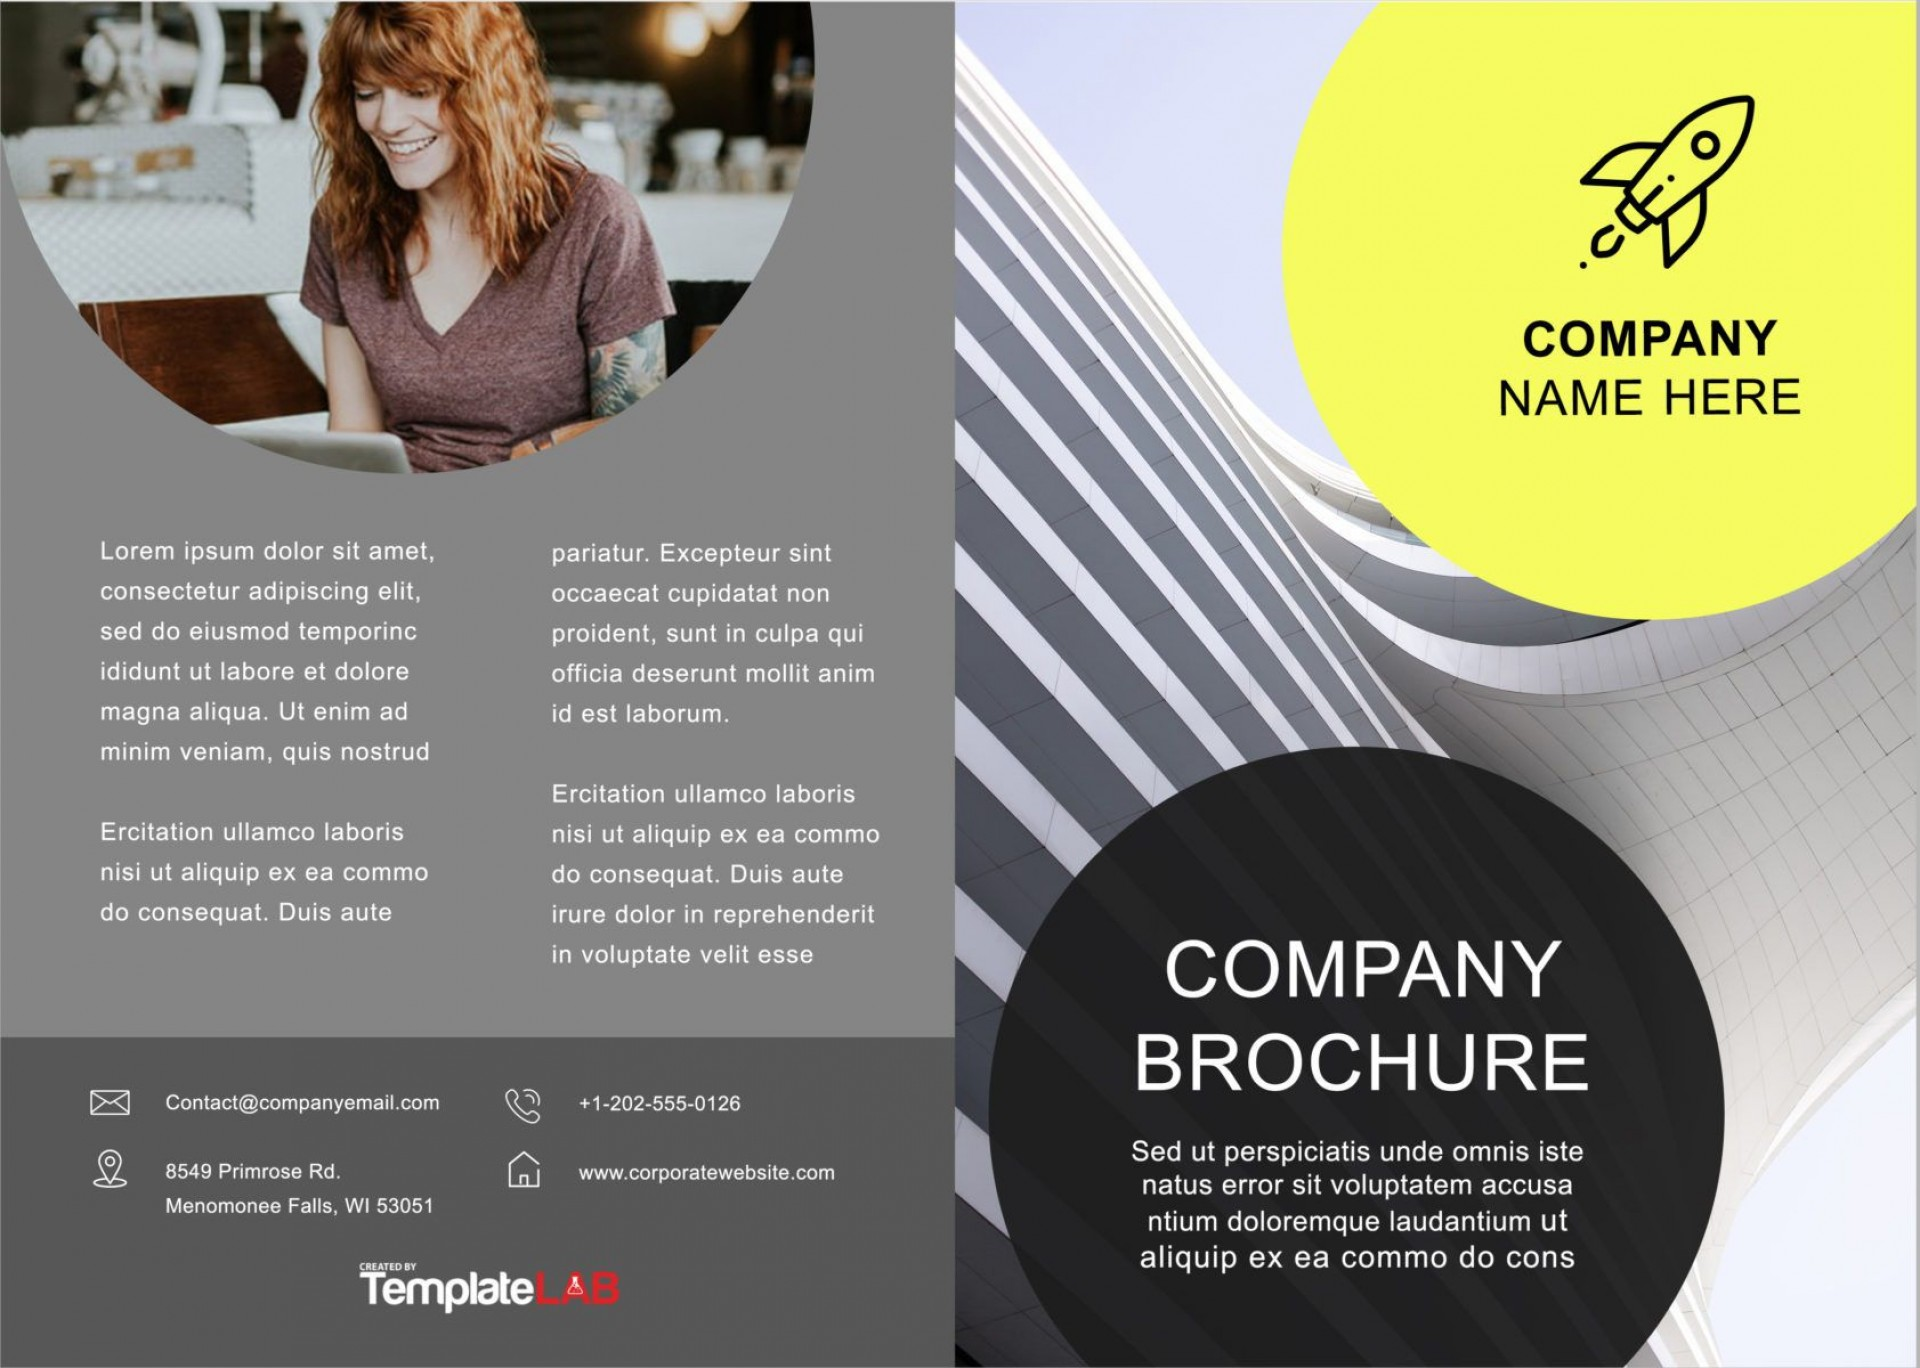 001 Staggering Free Online Brochure Template For Word Inspiration  Microsoft1920